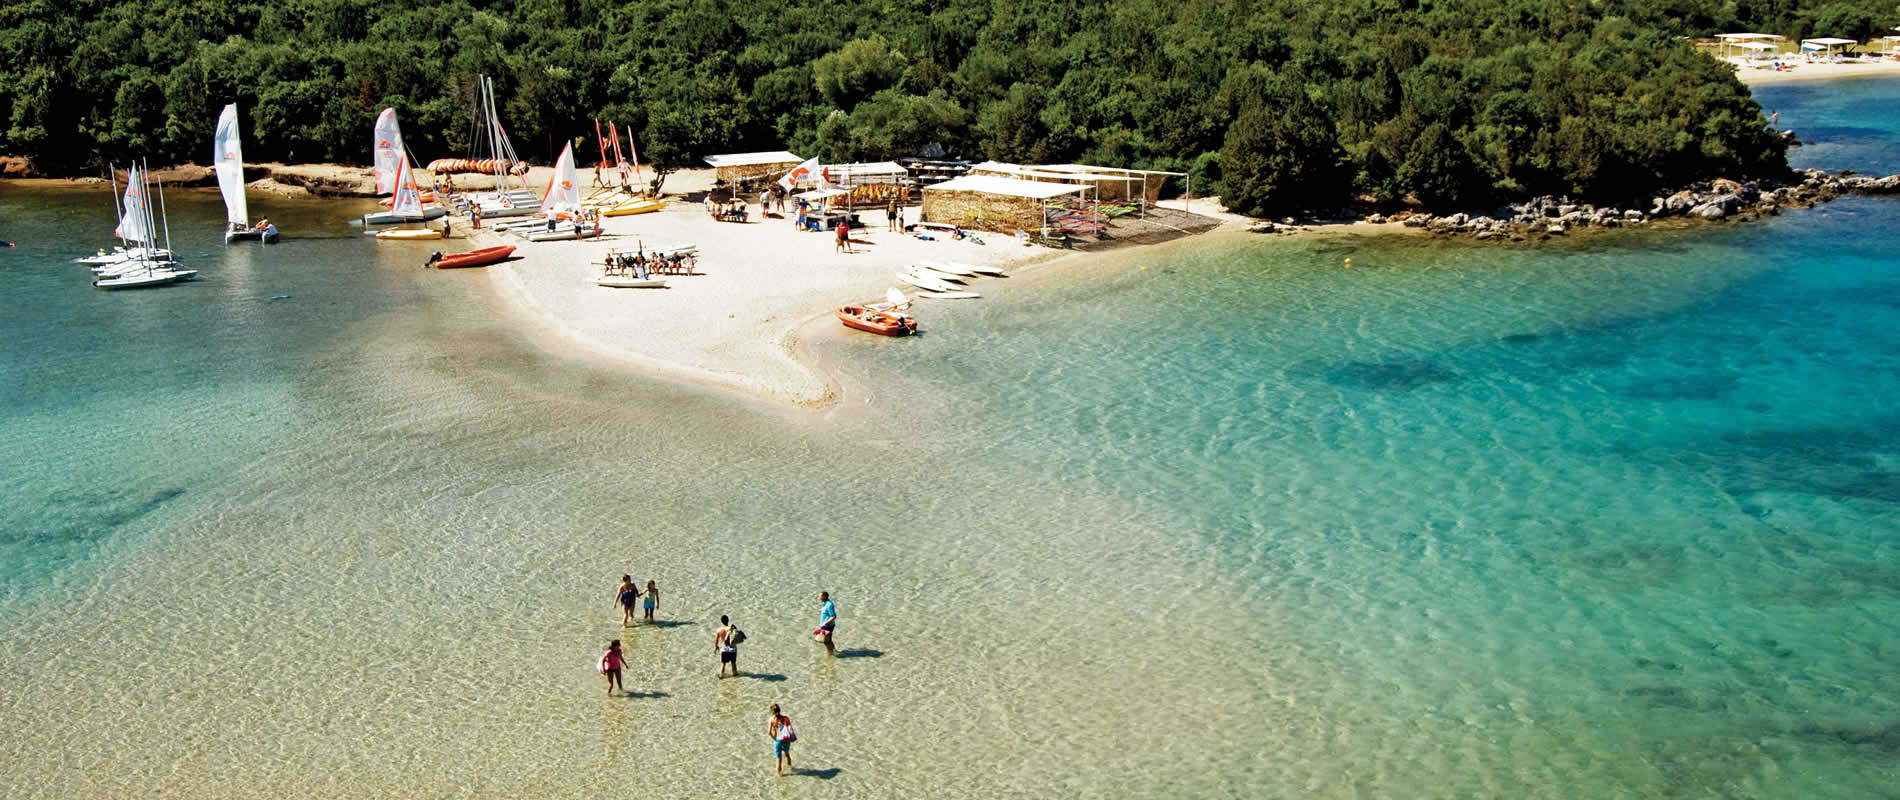 Sivota summer resort is a popular touristic destination and is known for the outstanding quality of its beaches with the crystal clear Ionian waters